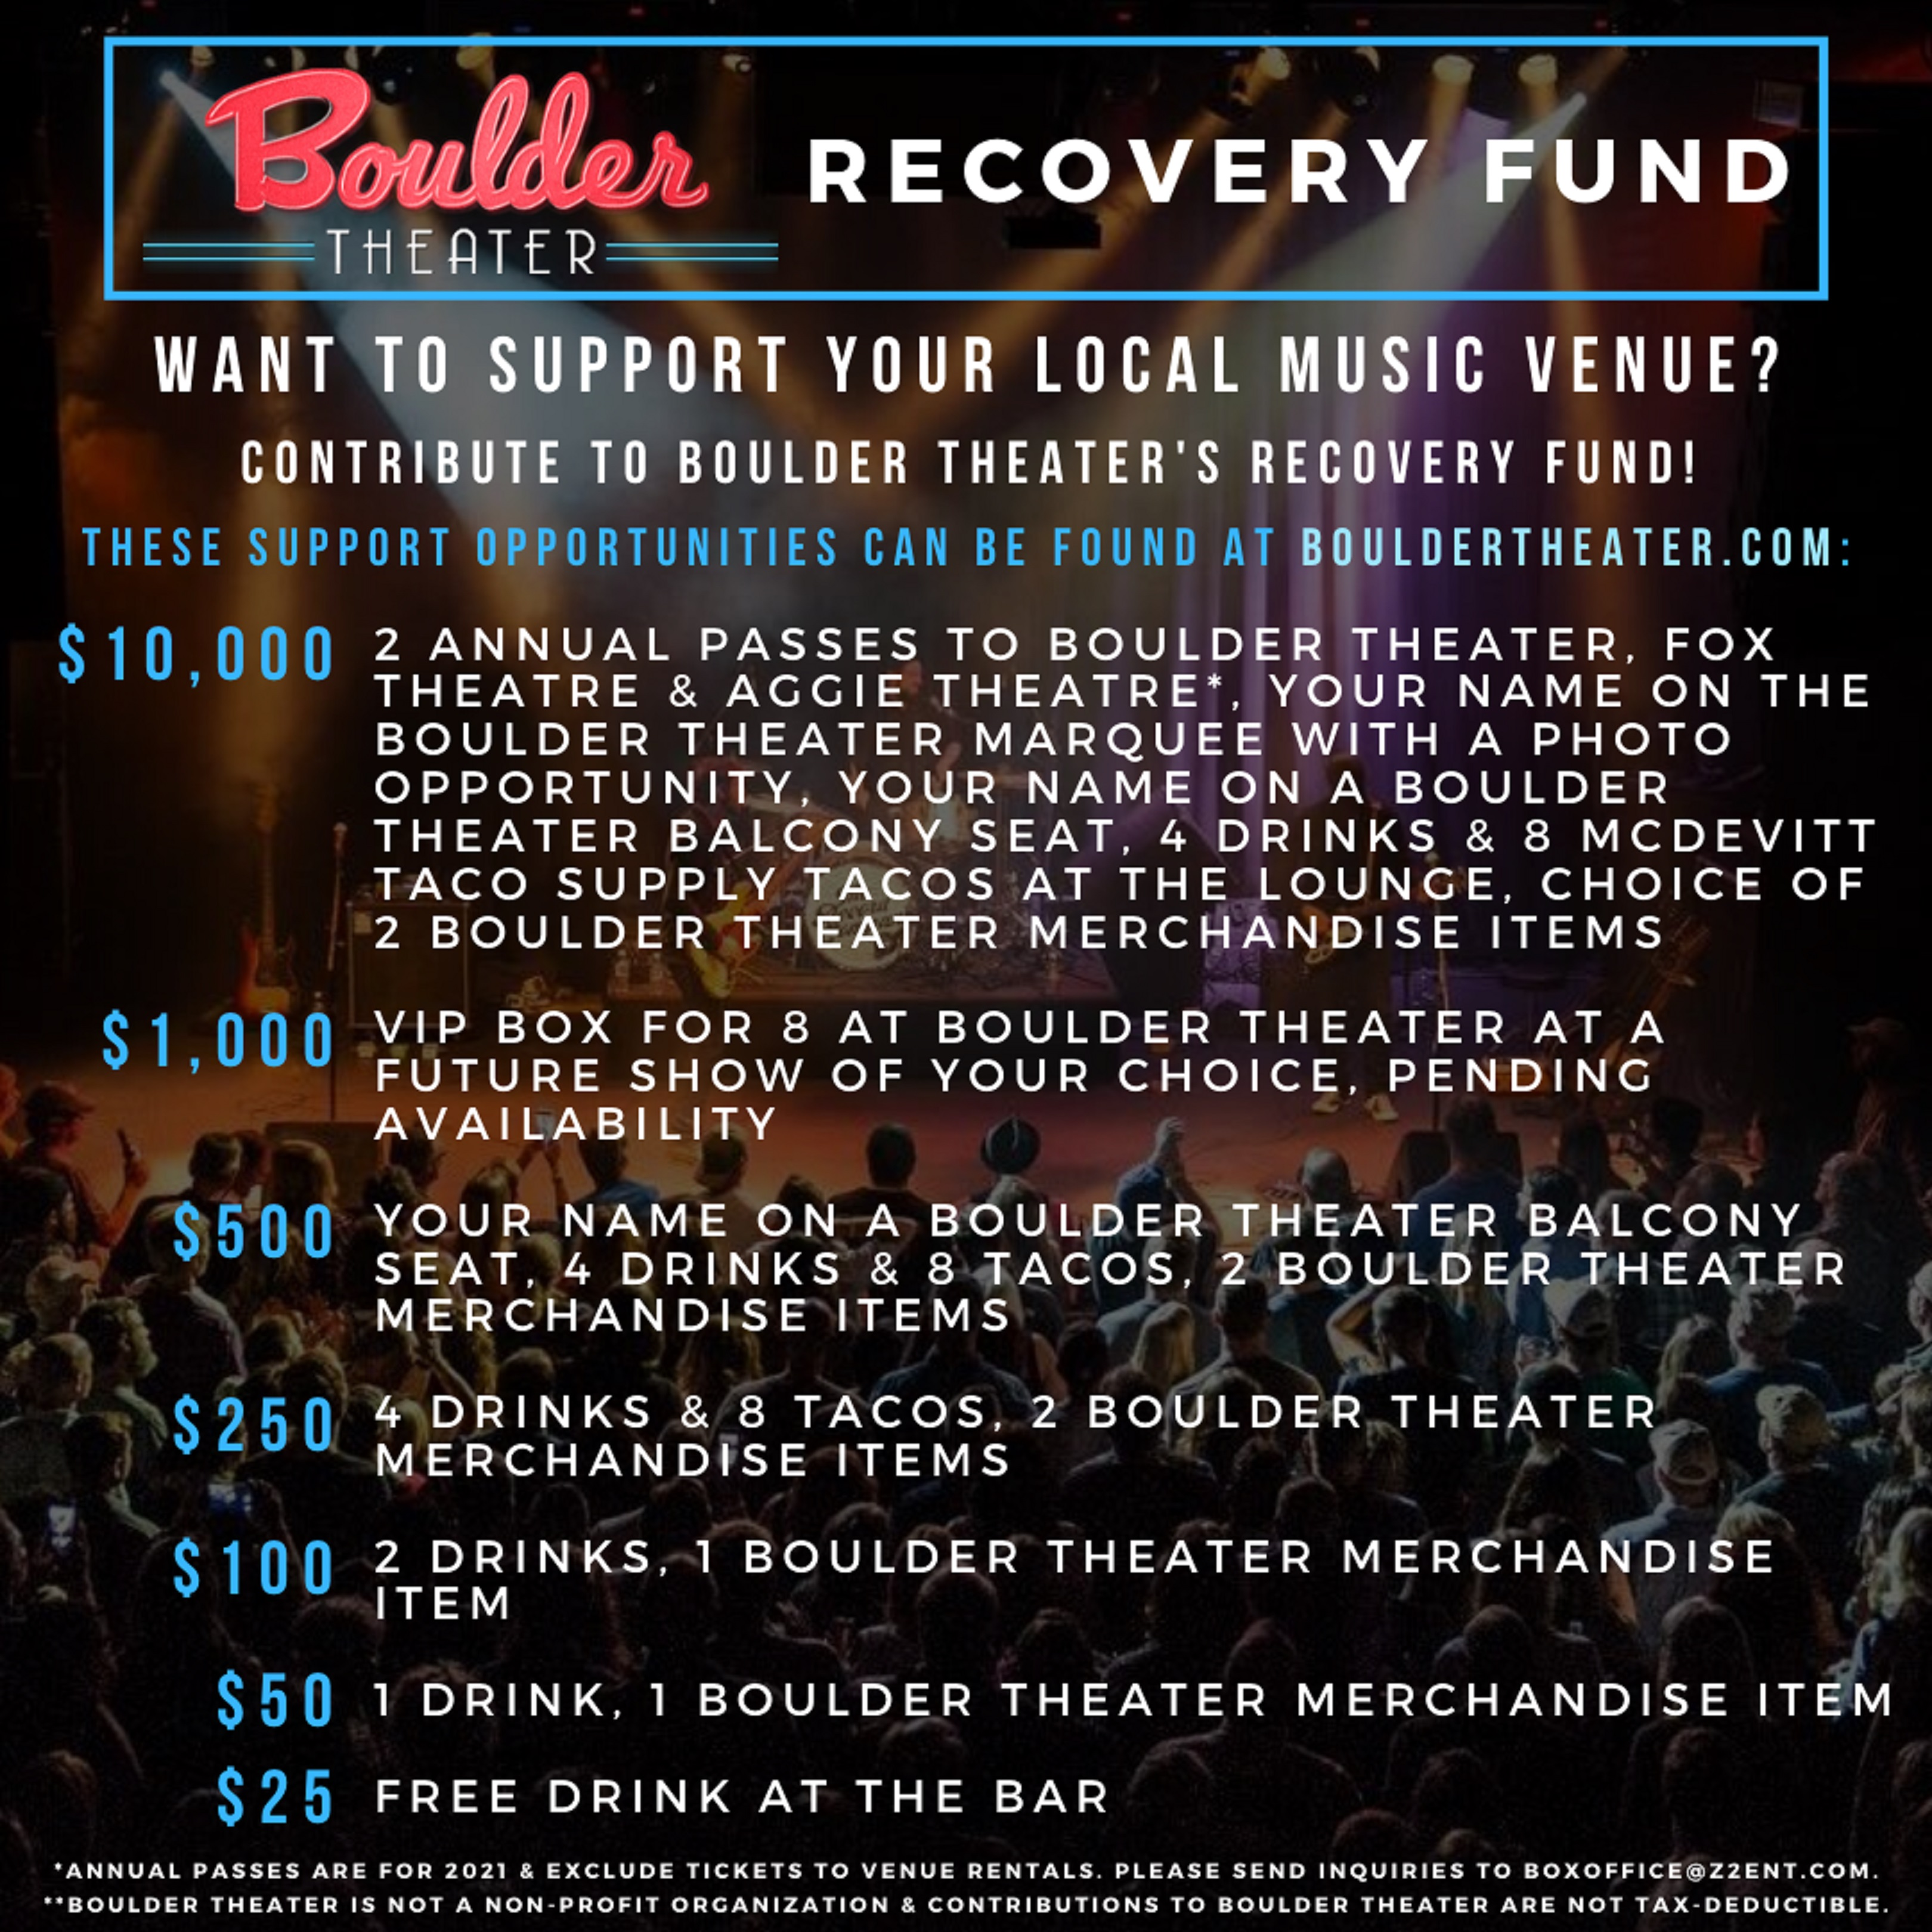 Z2 ENTERTAINMENT RECOVERY FUND (BOULDER THEATER, FOX THEATRE, AGGIE THEATRE)